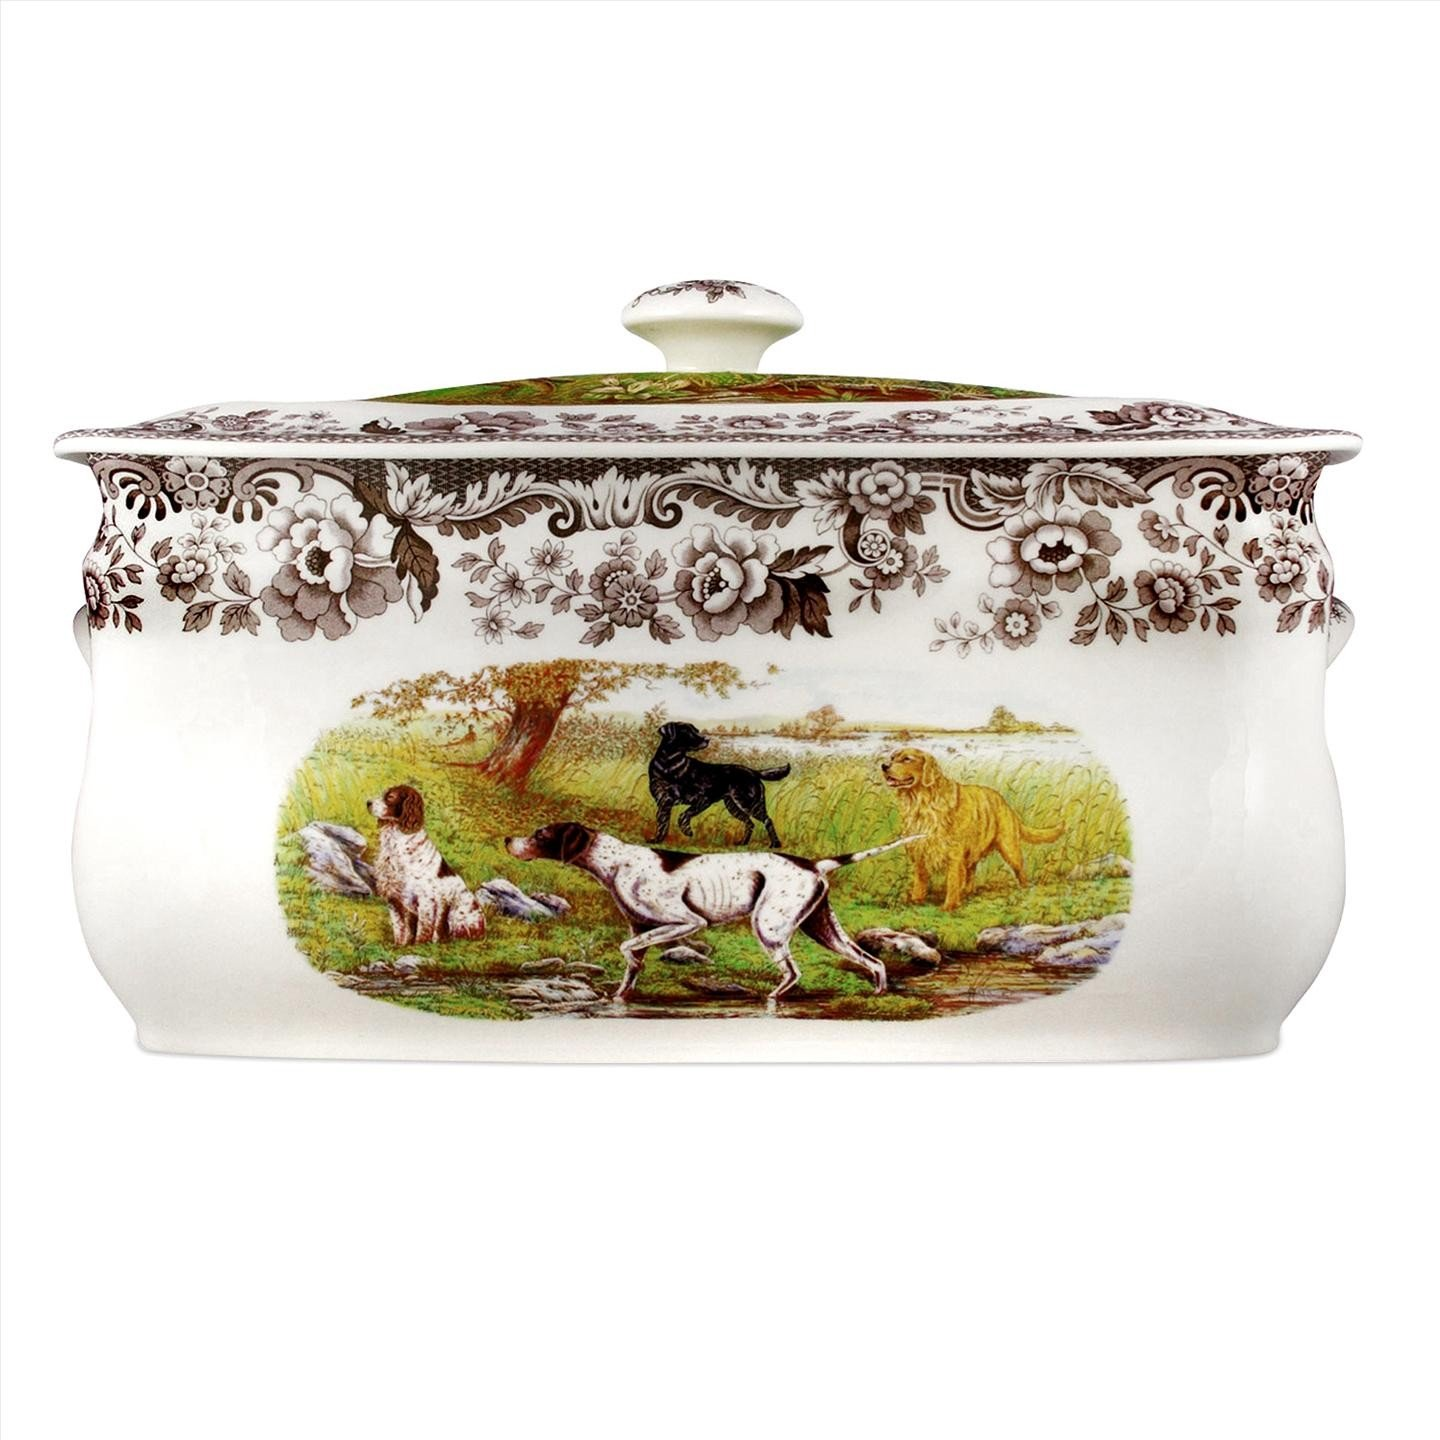 Spode Woodland Hunting Dogs 16-Inch by 8- 1/2-Inch by 9- 1/2-Inch Bread Bin, Hunting Dogs